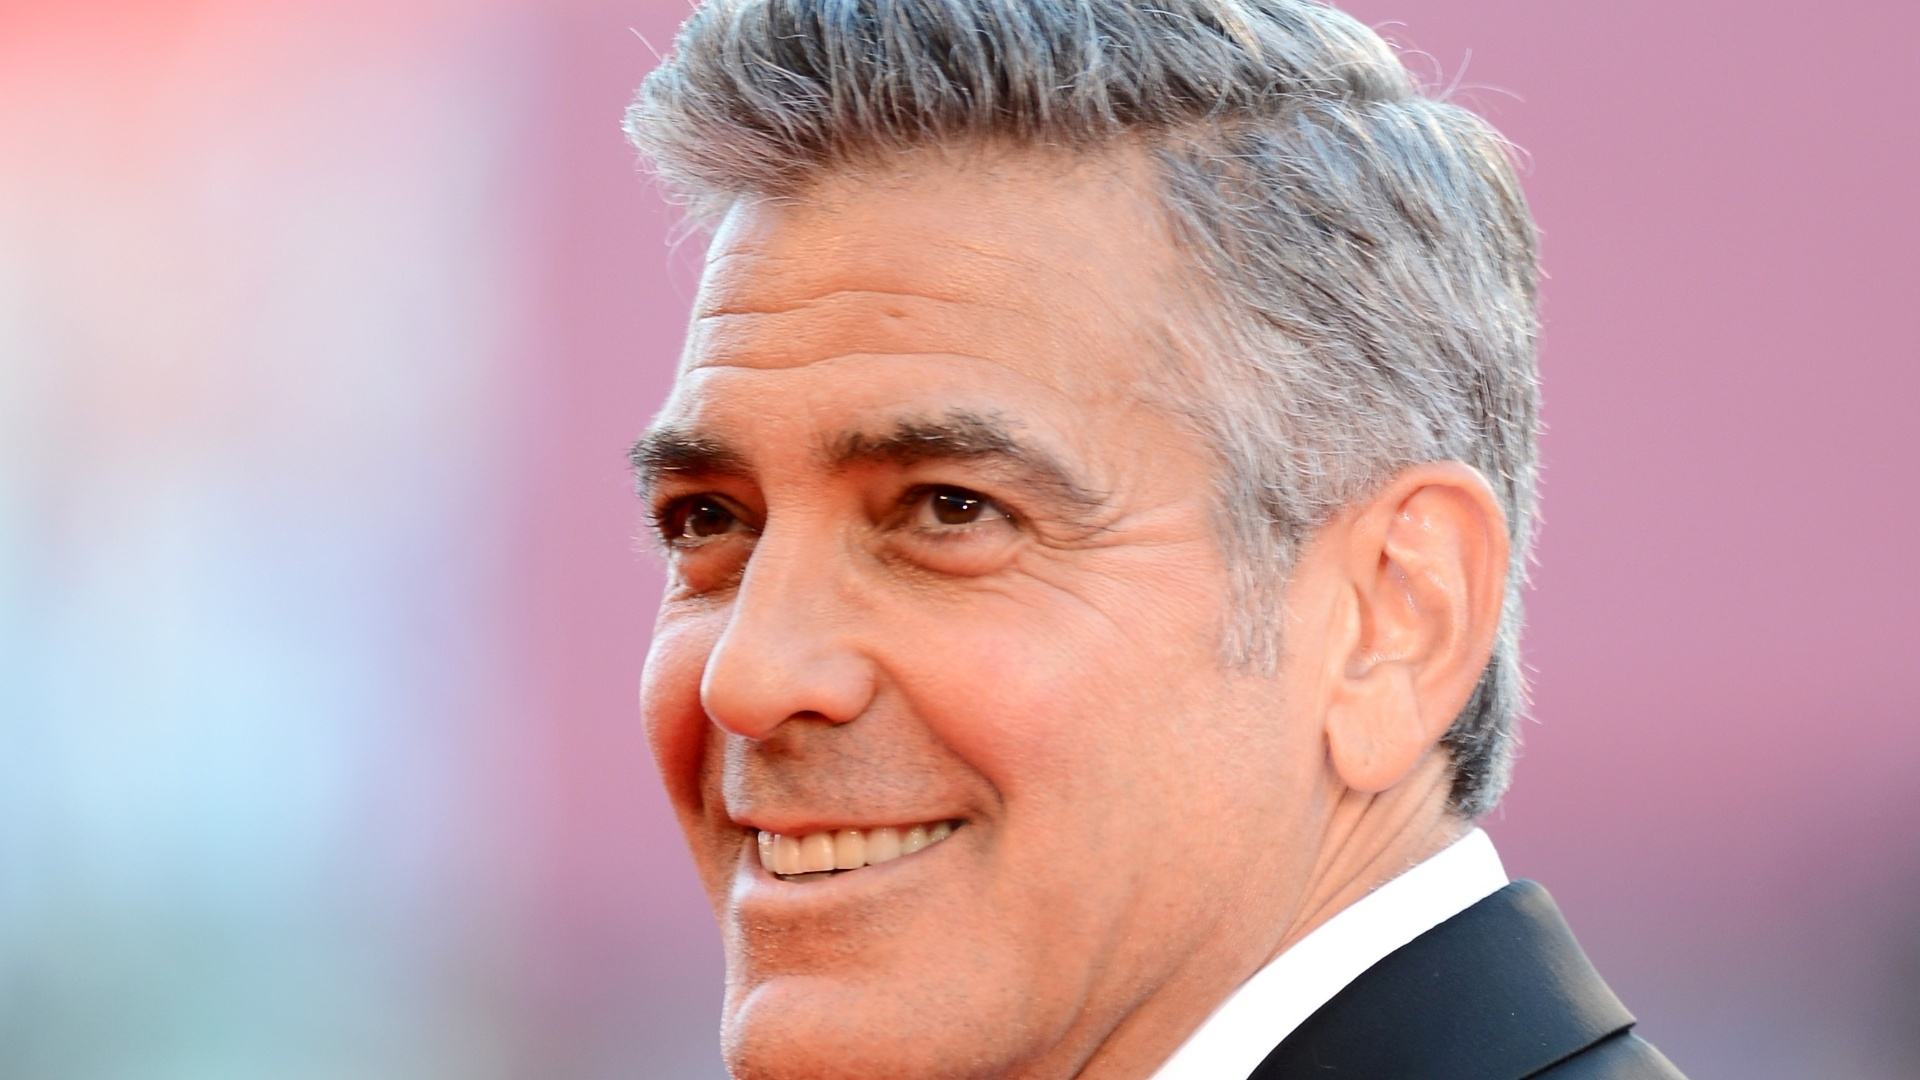 George-Clooney-Hairstyle-Wallpaper-HD-Resolution